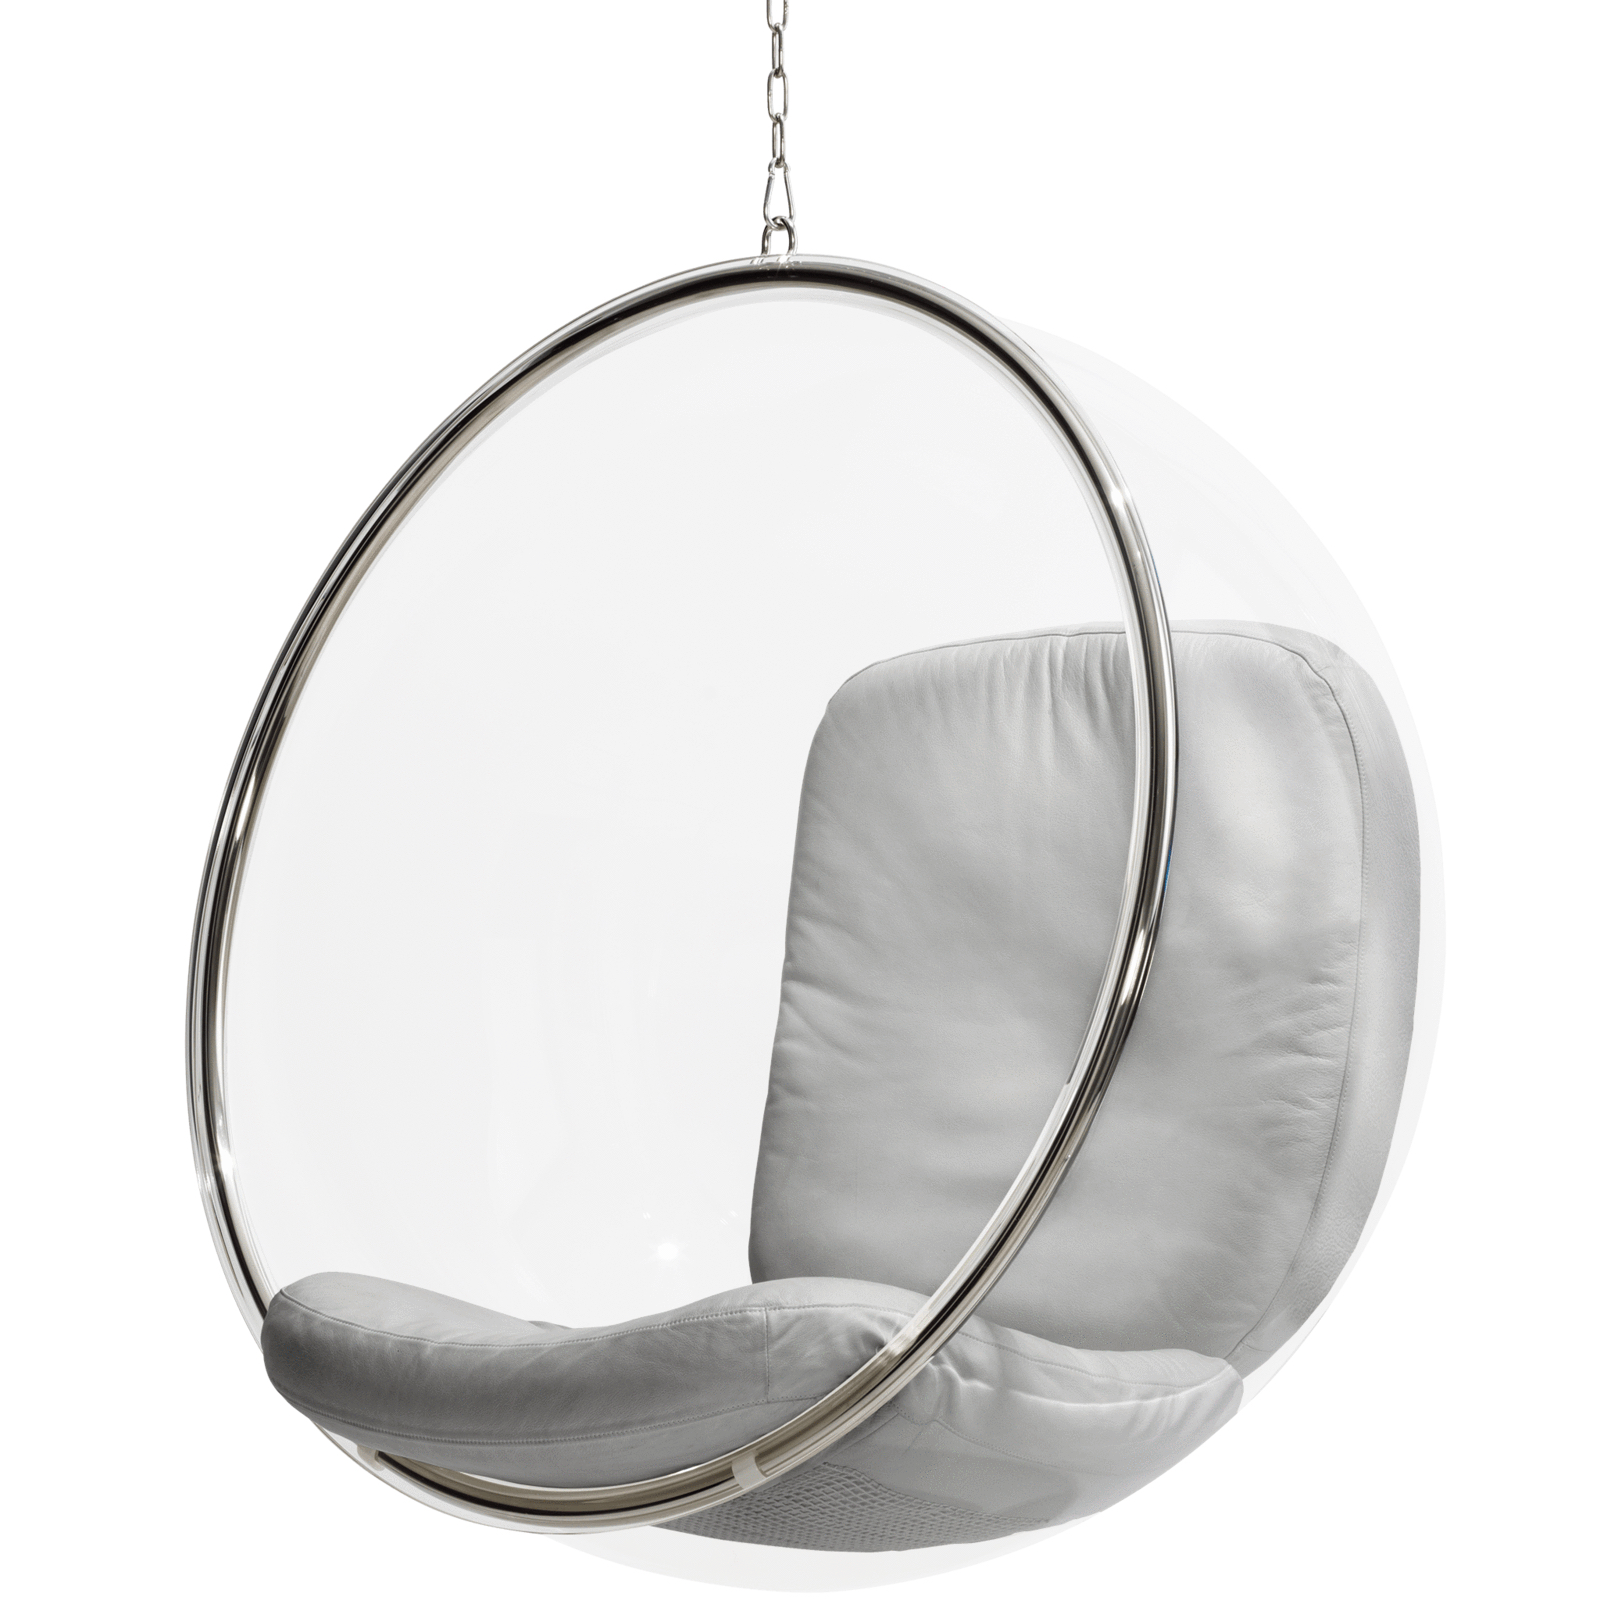 Eero Aarnio Hänge-Sessel BUBBLE CHAIR